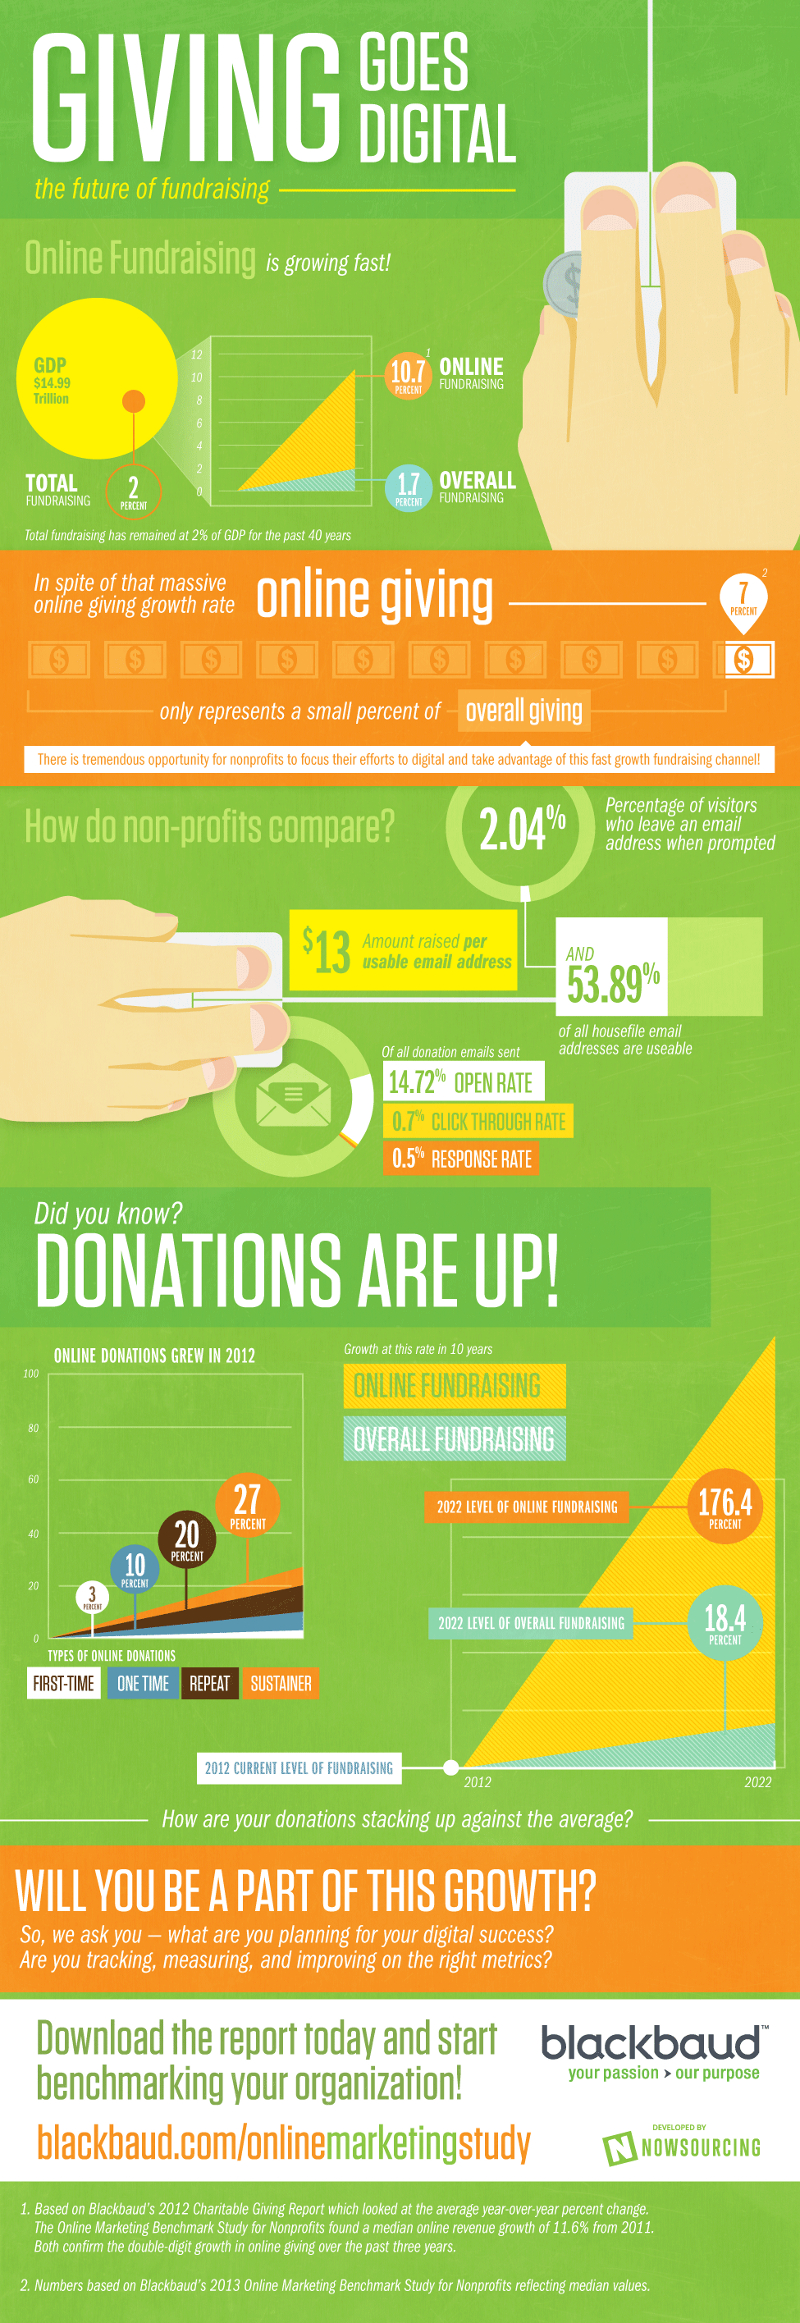 Online Fundraising Strategies